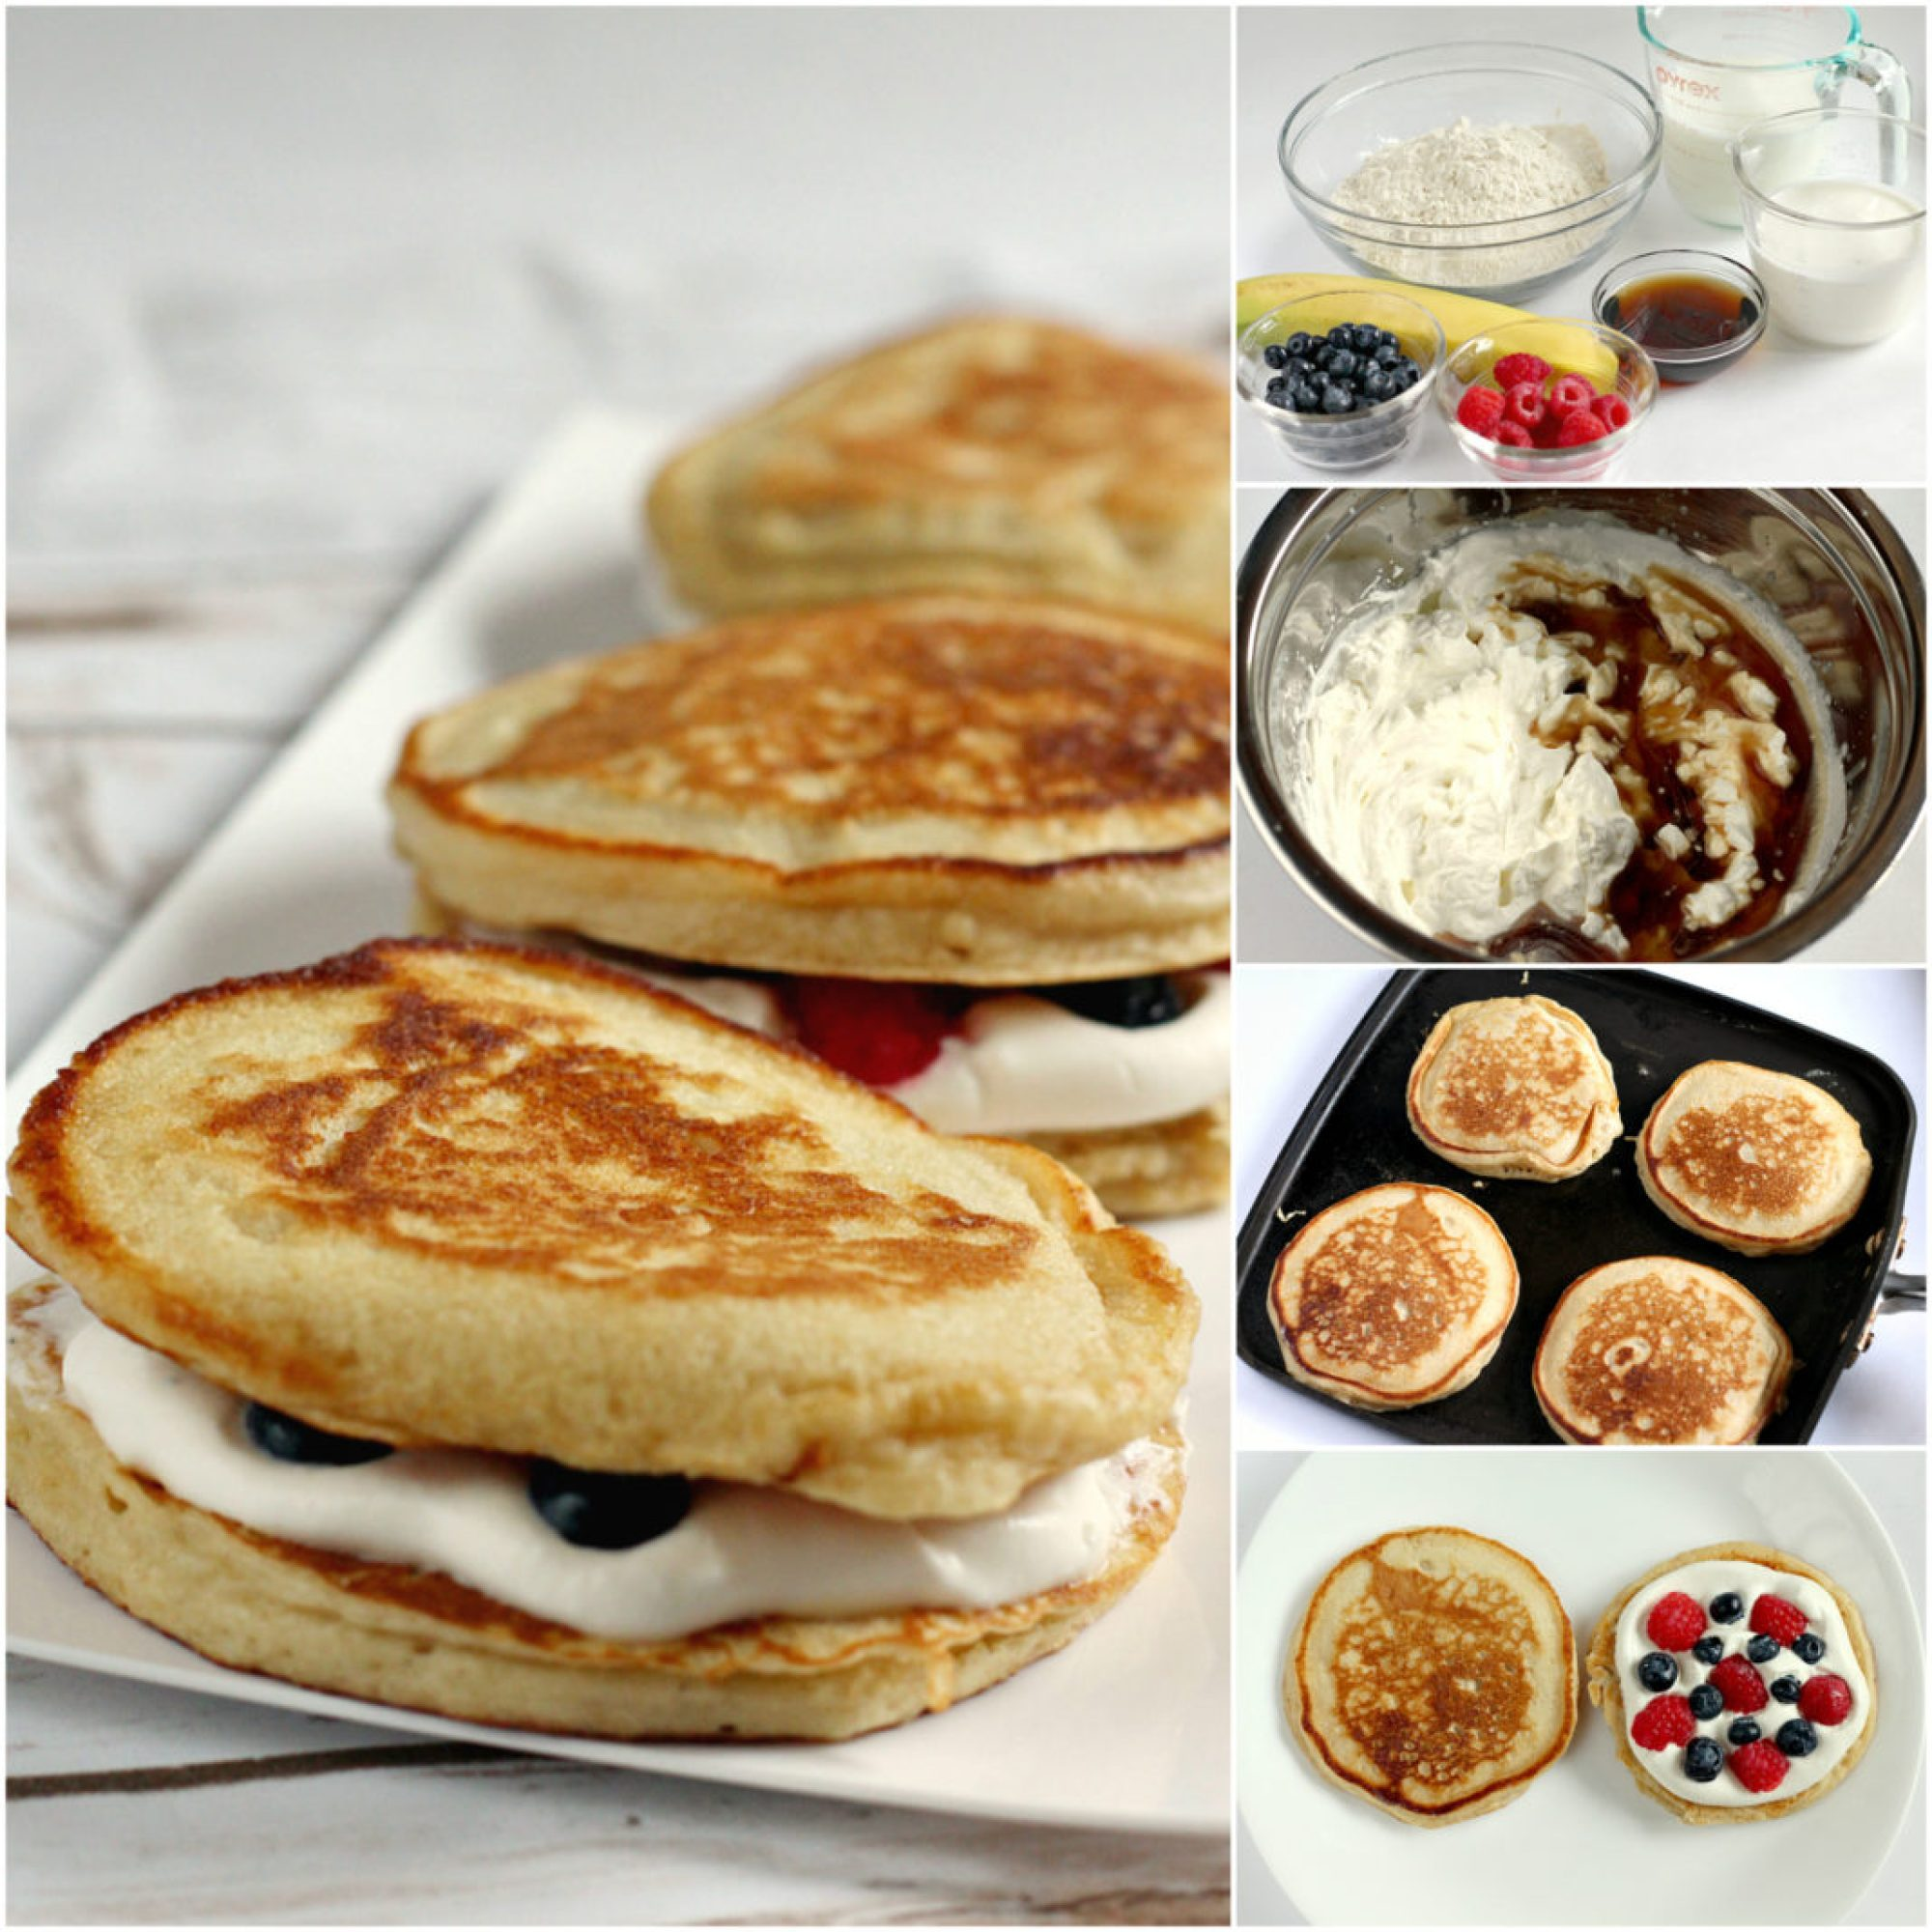 Step by step photos on how to make Pancake Breakfast Sandwiches filled with fresh fruit and a maple whipped cream filling.